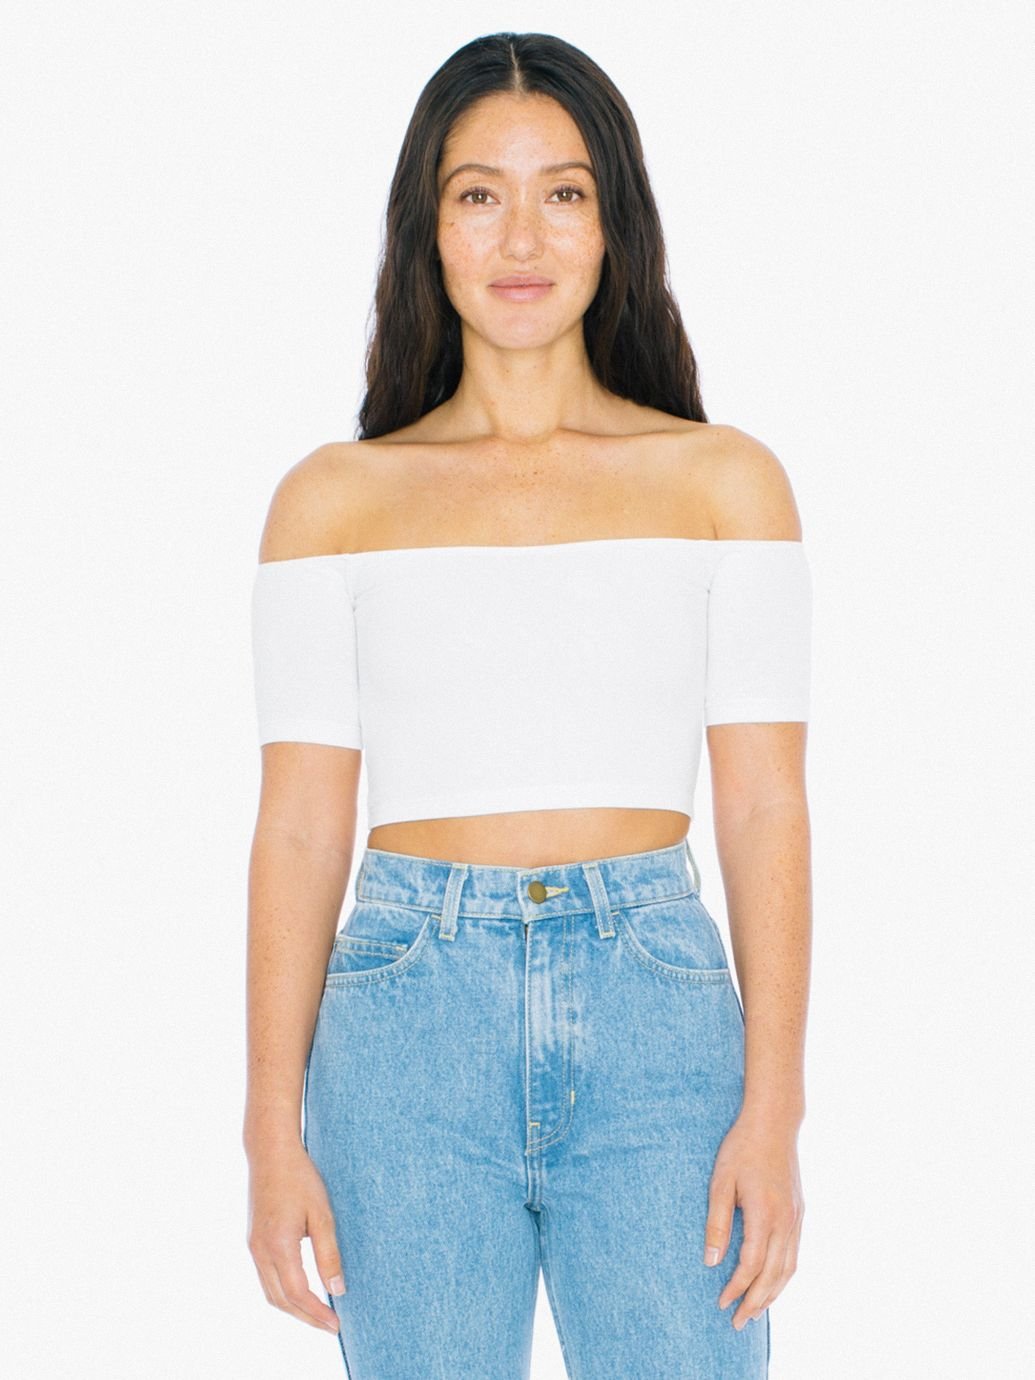 Wear it when its hot out or to dance class. We found the arm holes to be a bit snug so please keep that in mind when choosing a size. 95% Cotton / 5% Elastane construction. Please note that the style calls for % cotton thread but American Apparel sometimes uses a poly/cotton thread.